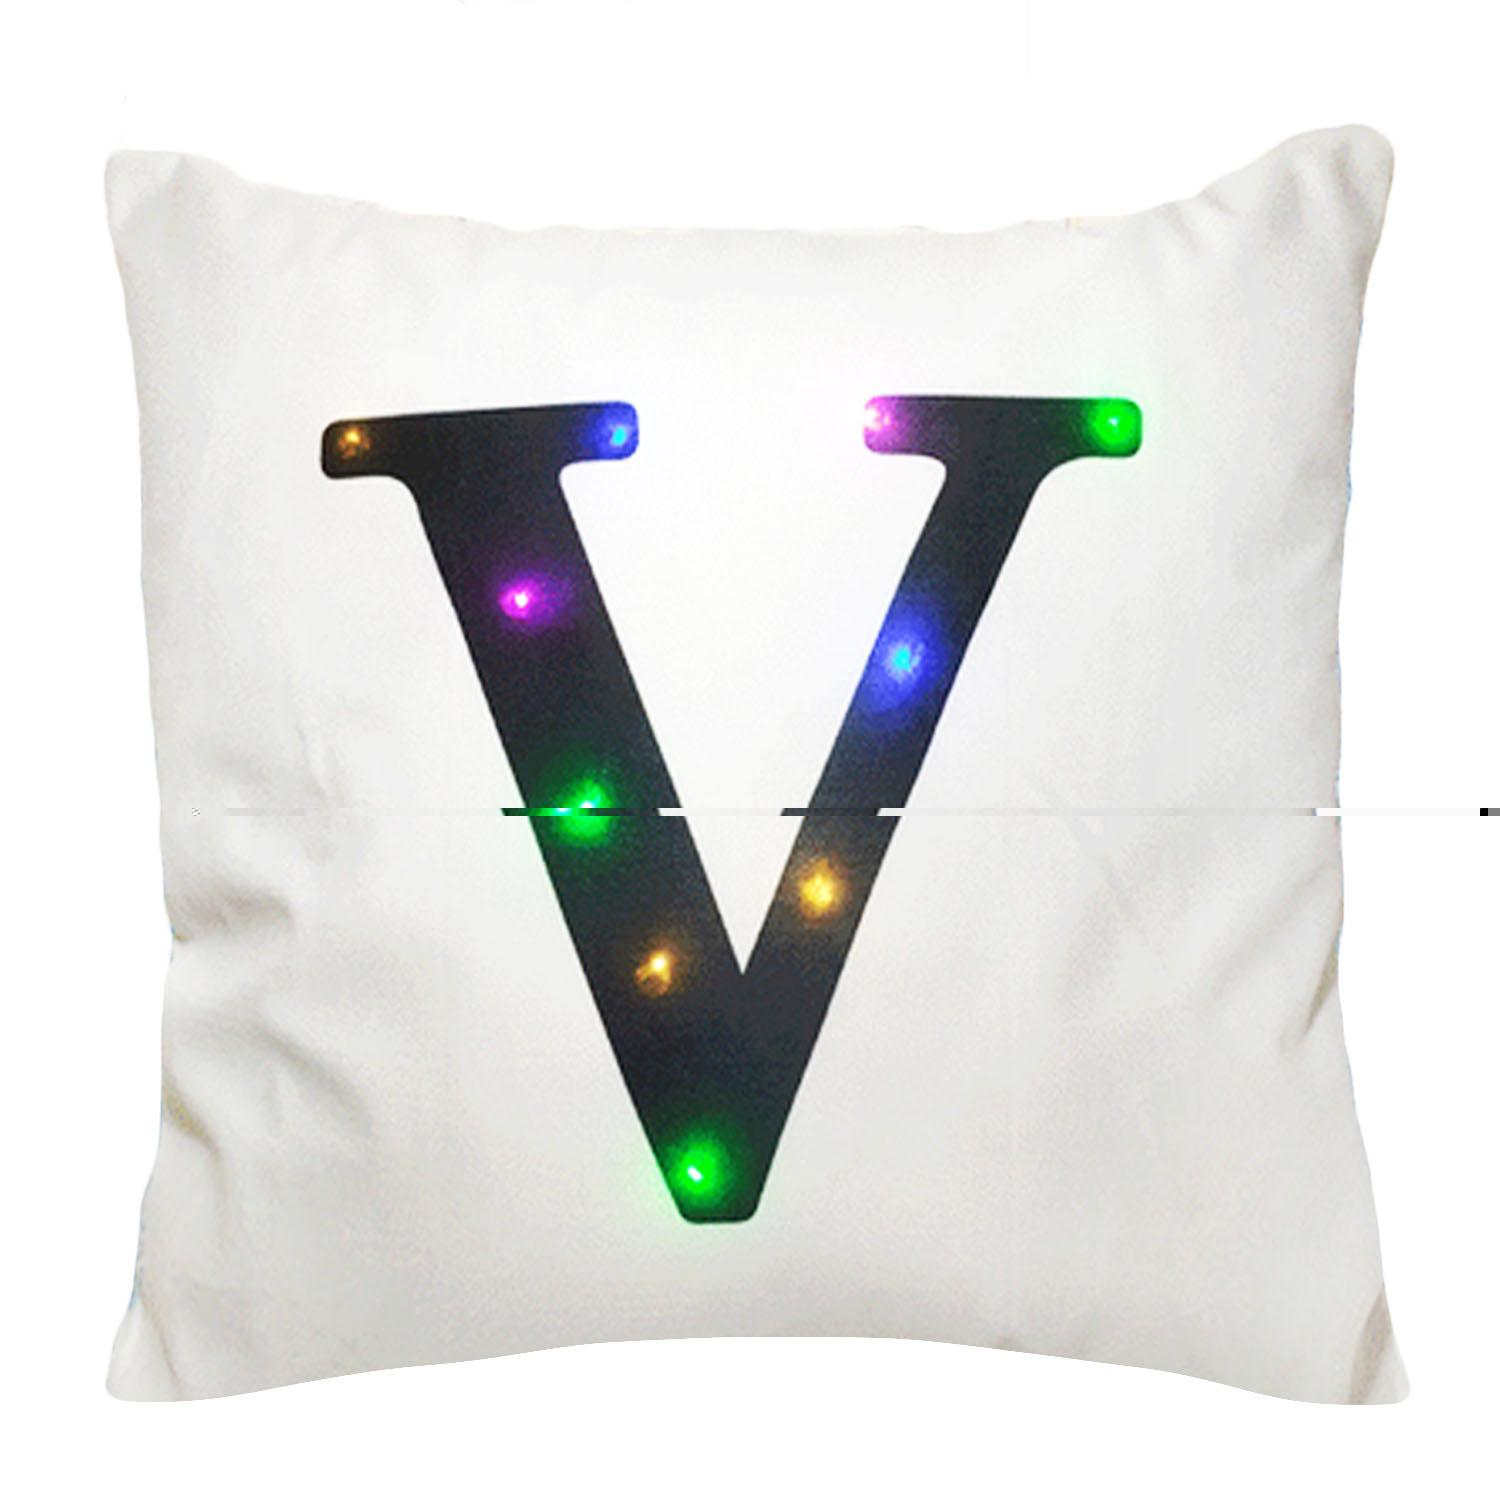 Jual v for vendetta mask cek harga di PriceArea com Source · 45 x 45cm Fashion Large Printed Letter Throw Pillow Cover Case Pillowcase with Glowing LED ...